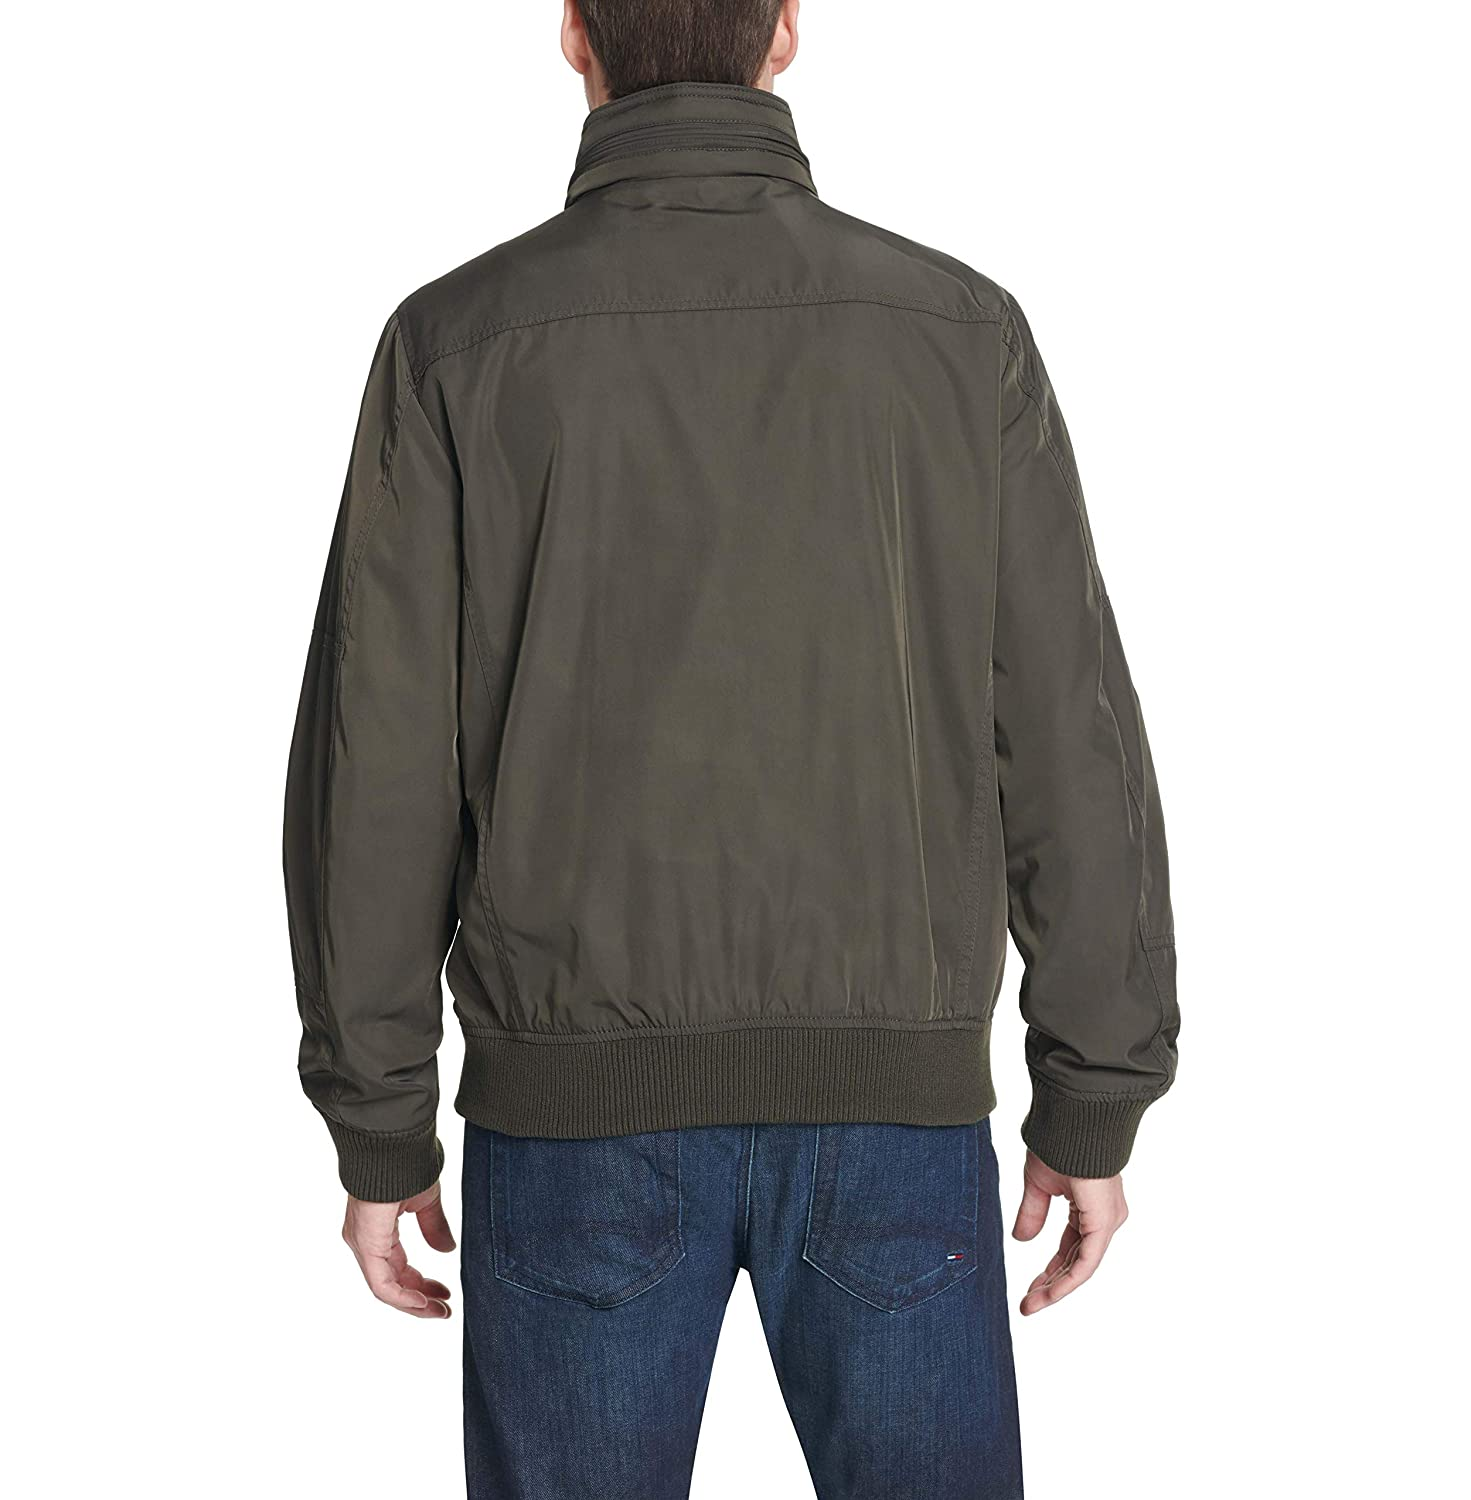 2071f6a8 Tommy Hilfiger Men's Performance Bomber Jacket (Regular, Big & Tall) at  Amazon Men's Clothing store: